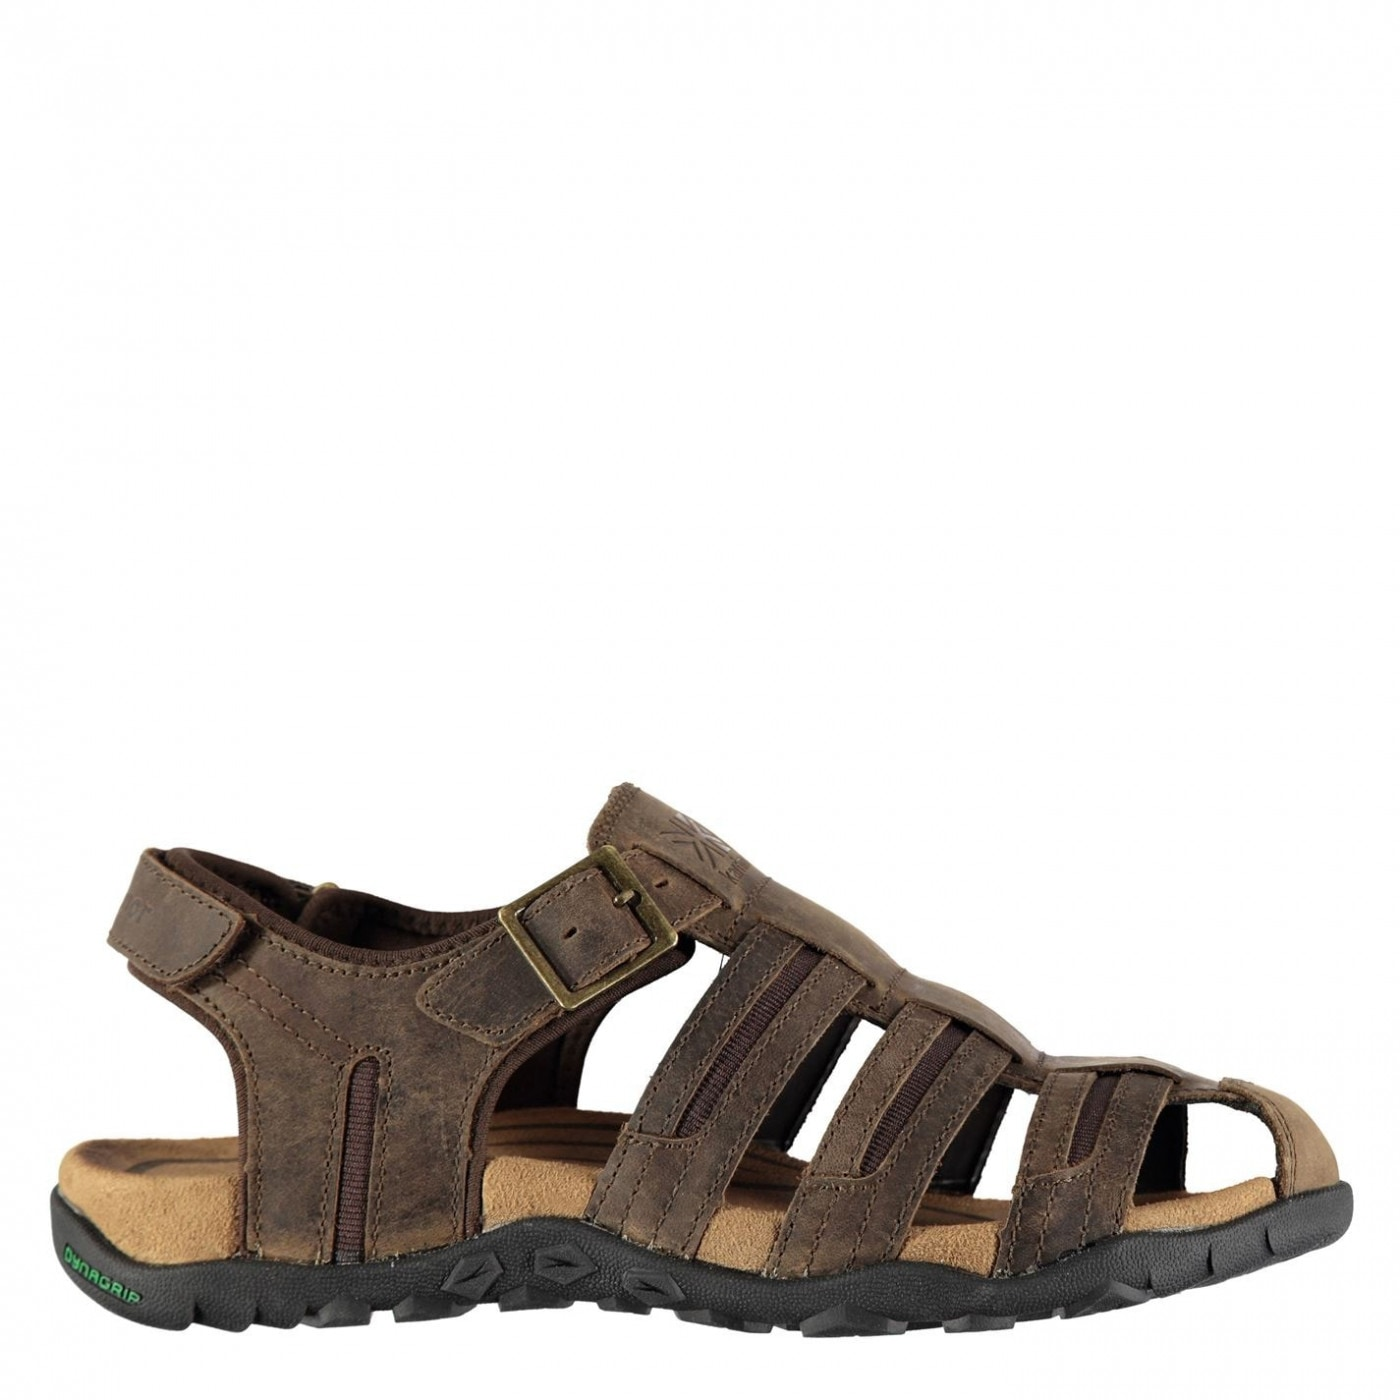 Karrimor Fisherman Sandals Mens